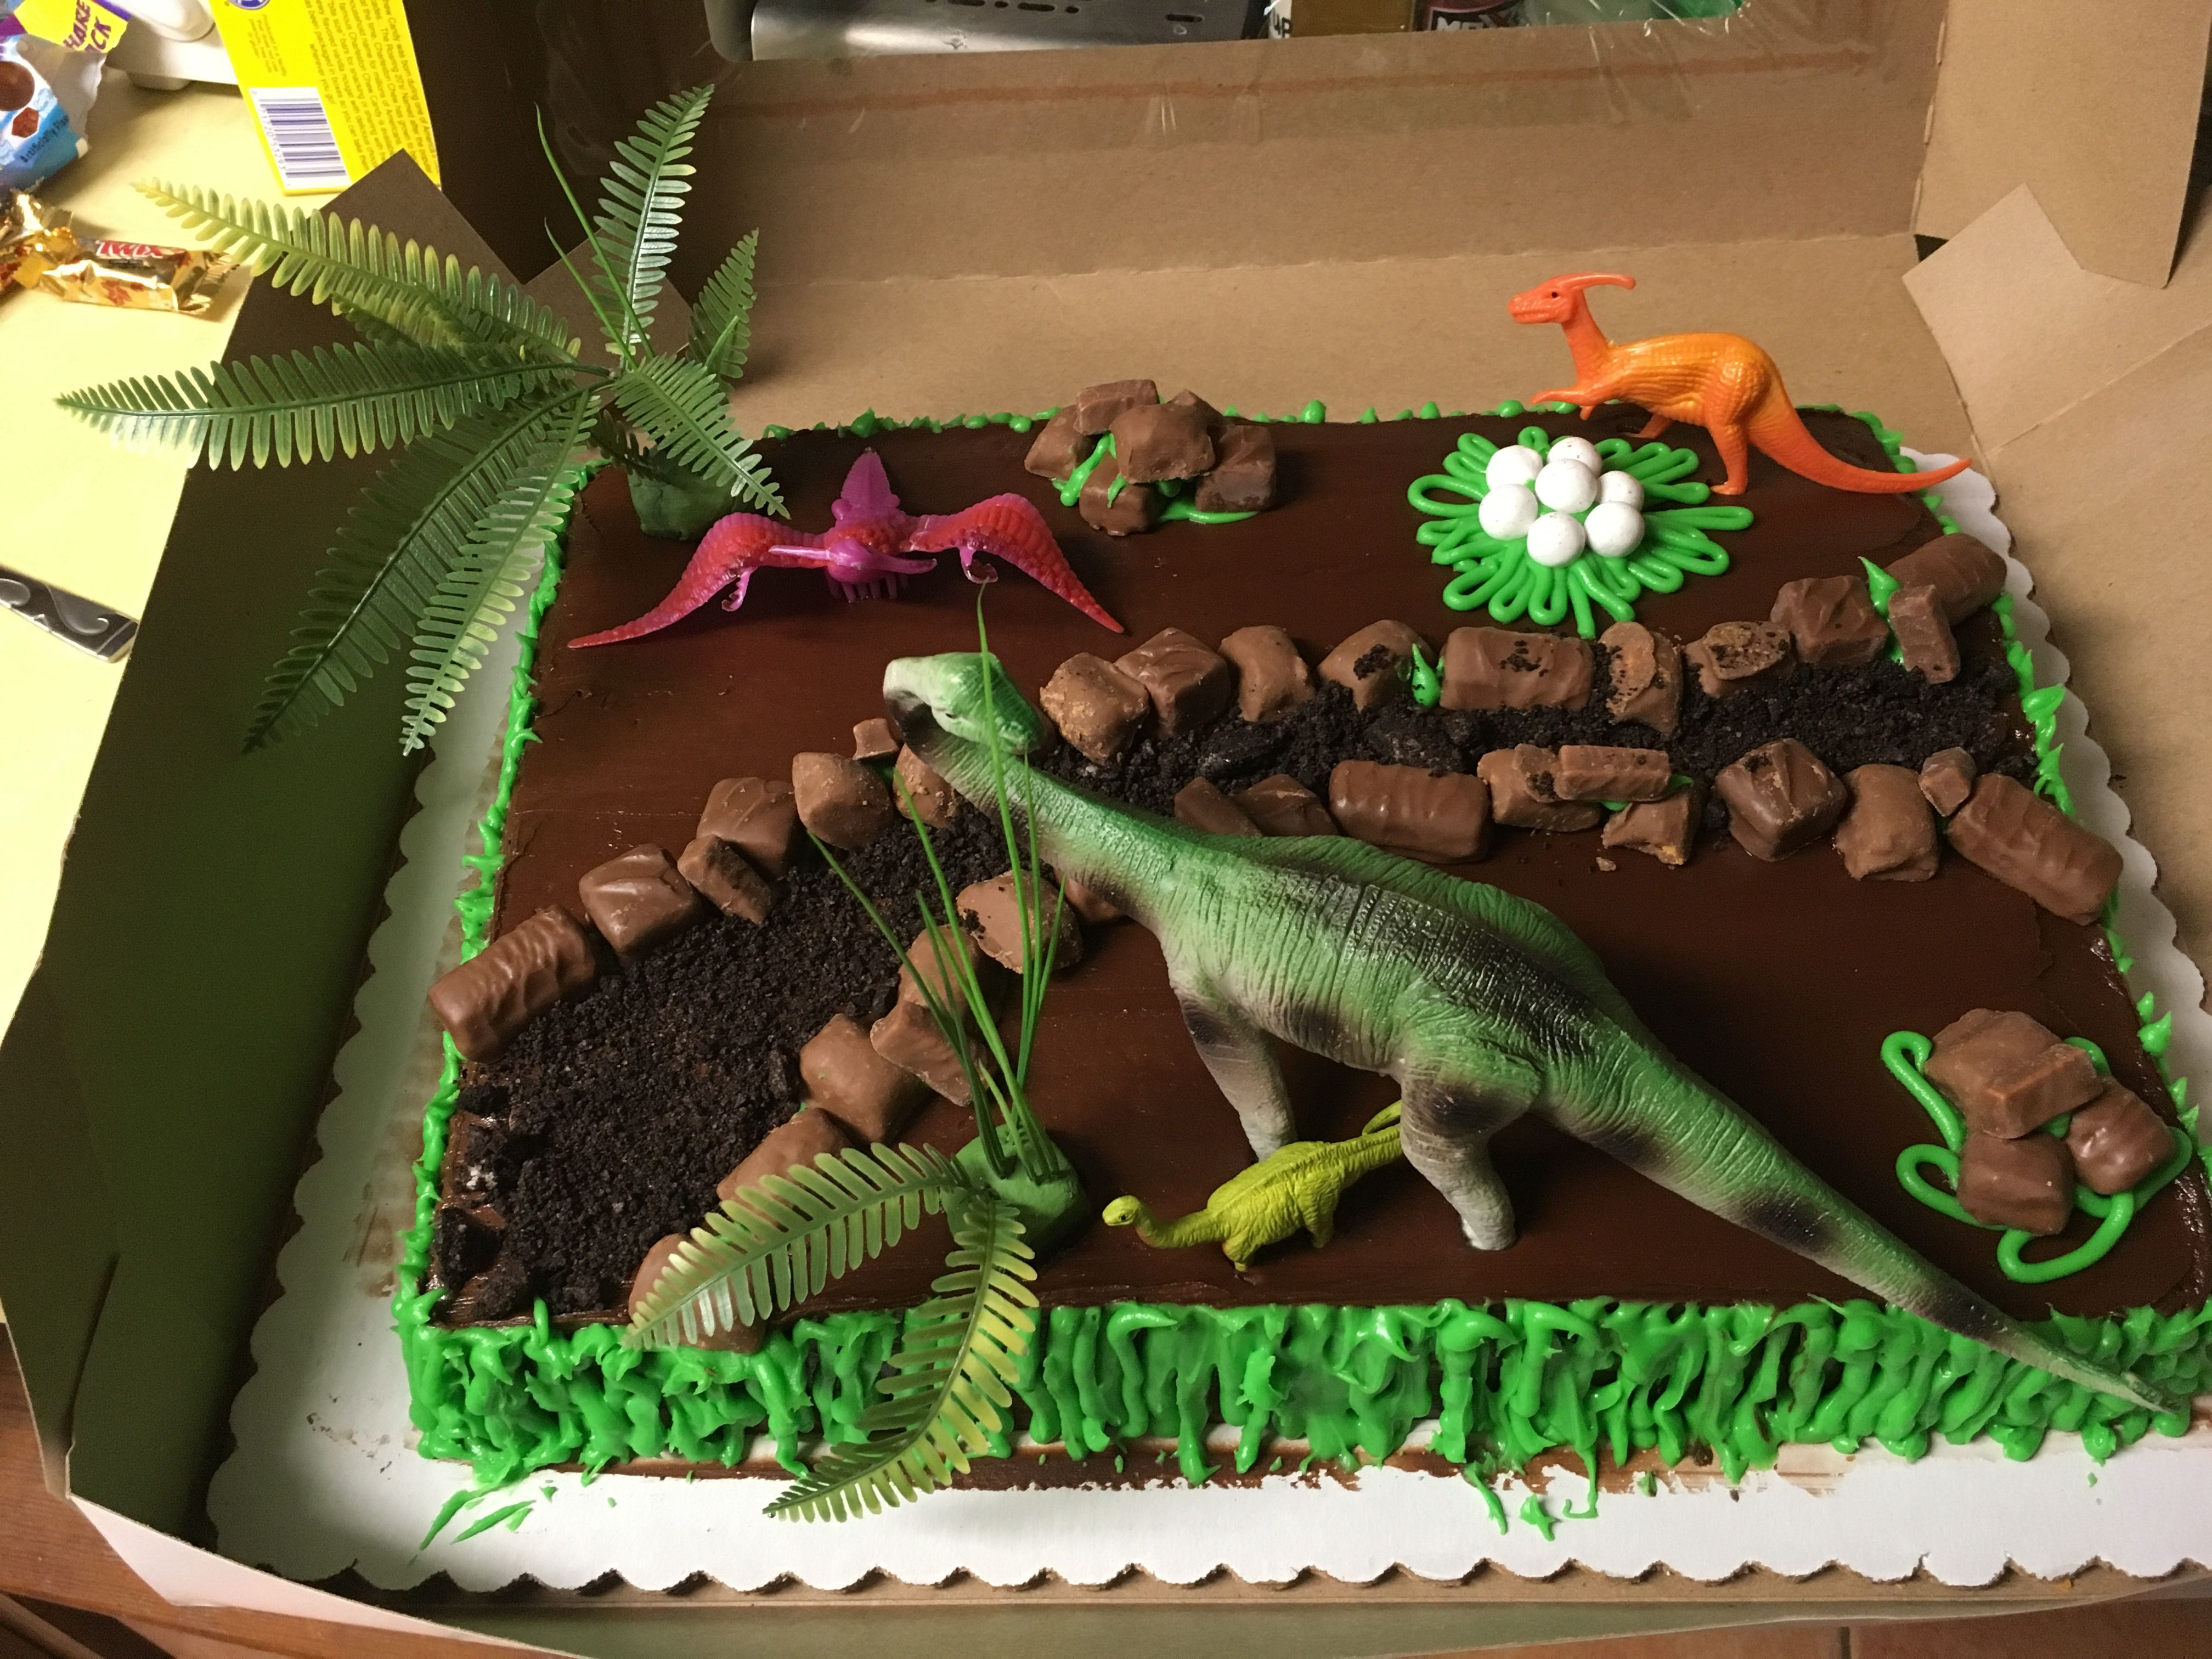 Perfect For A Dino Birthday Party Bought Half Sheet Chocolate Cake With Frosting The Rest I Did Myself Candy Oreo Crumble And Fake